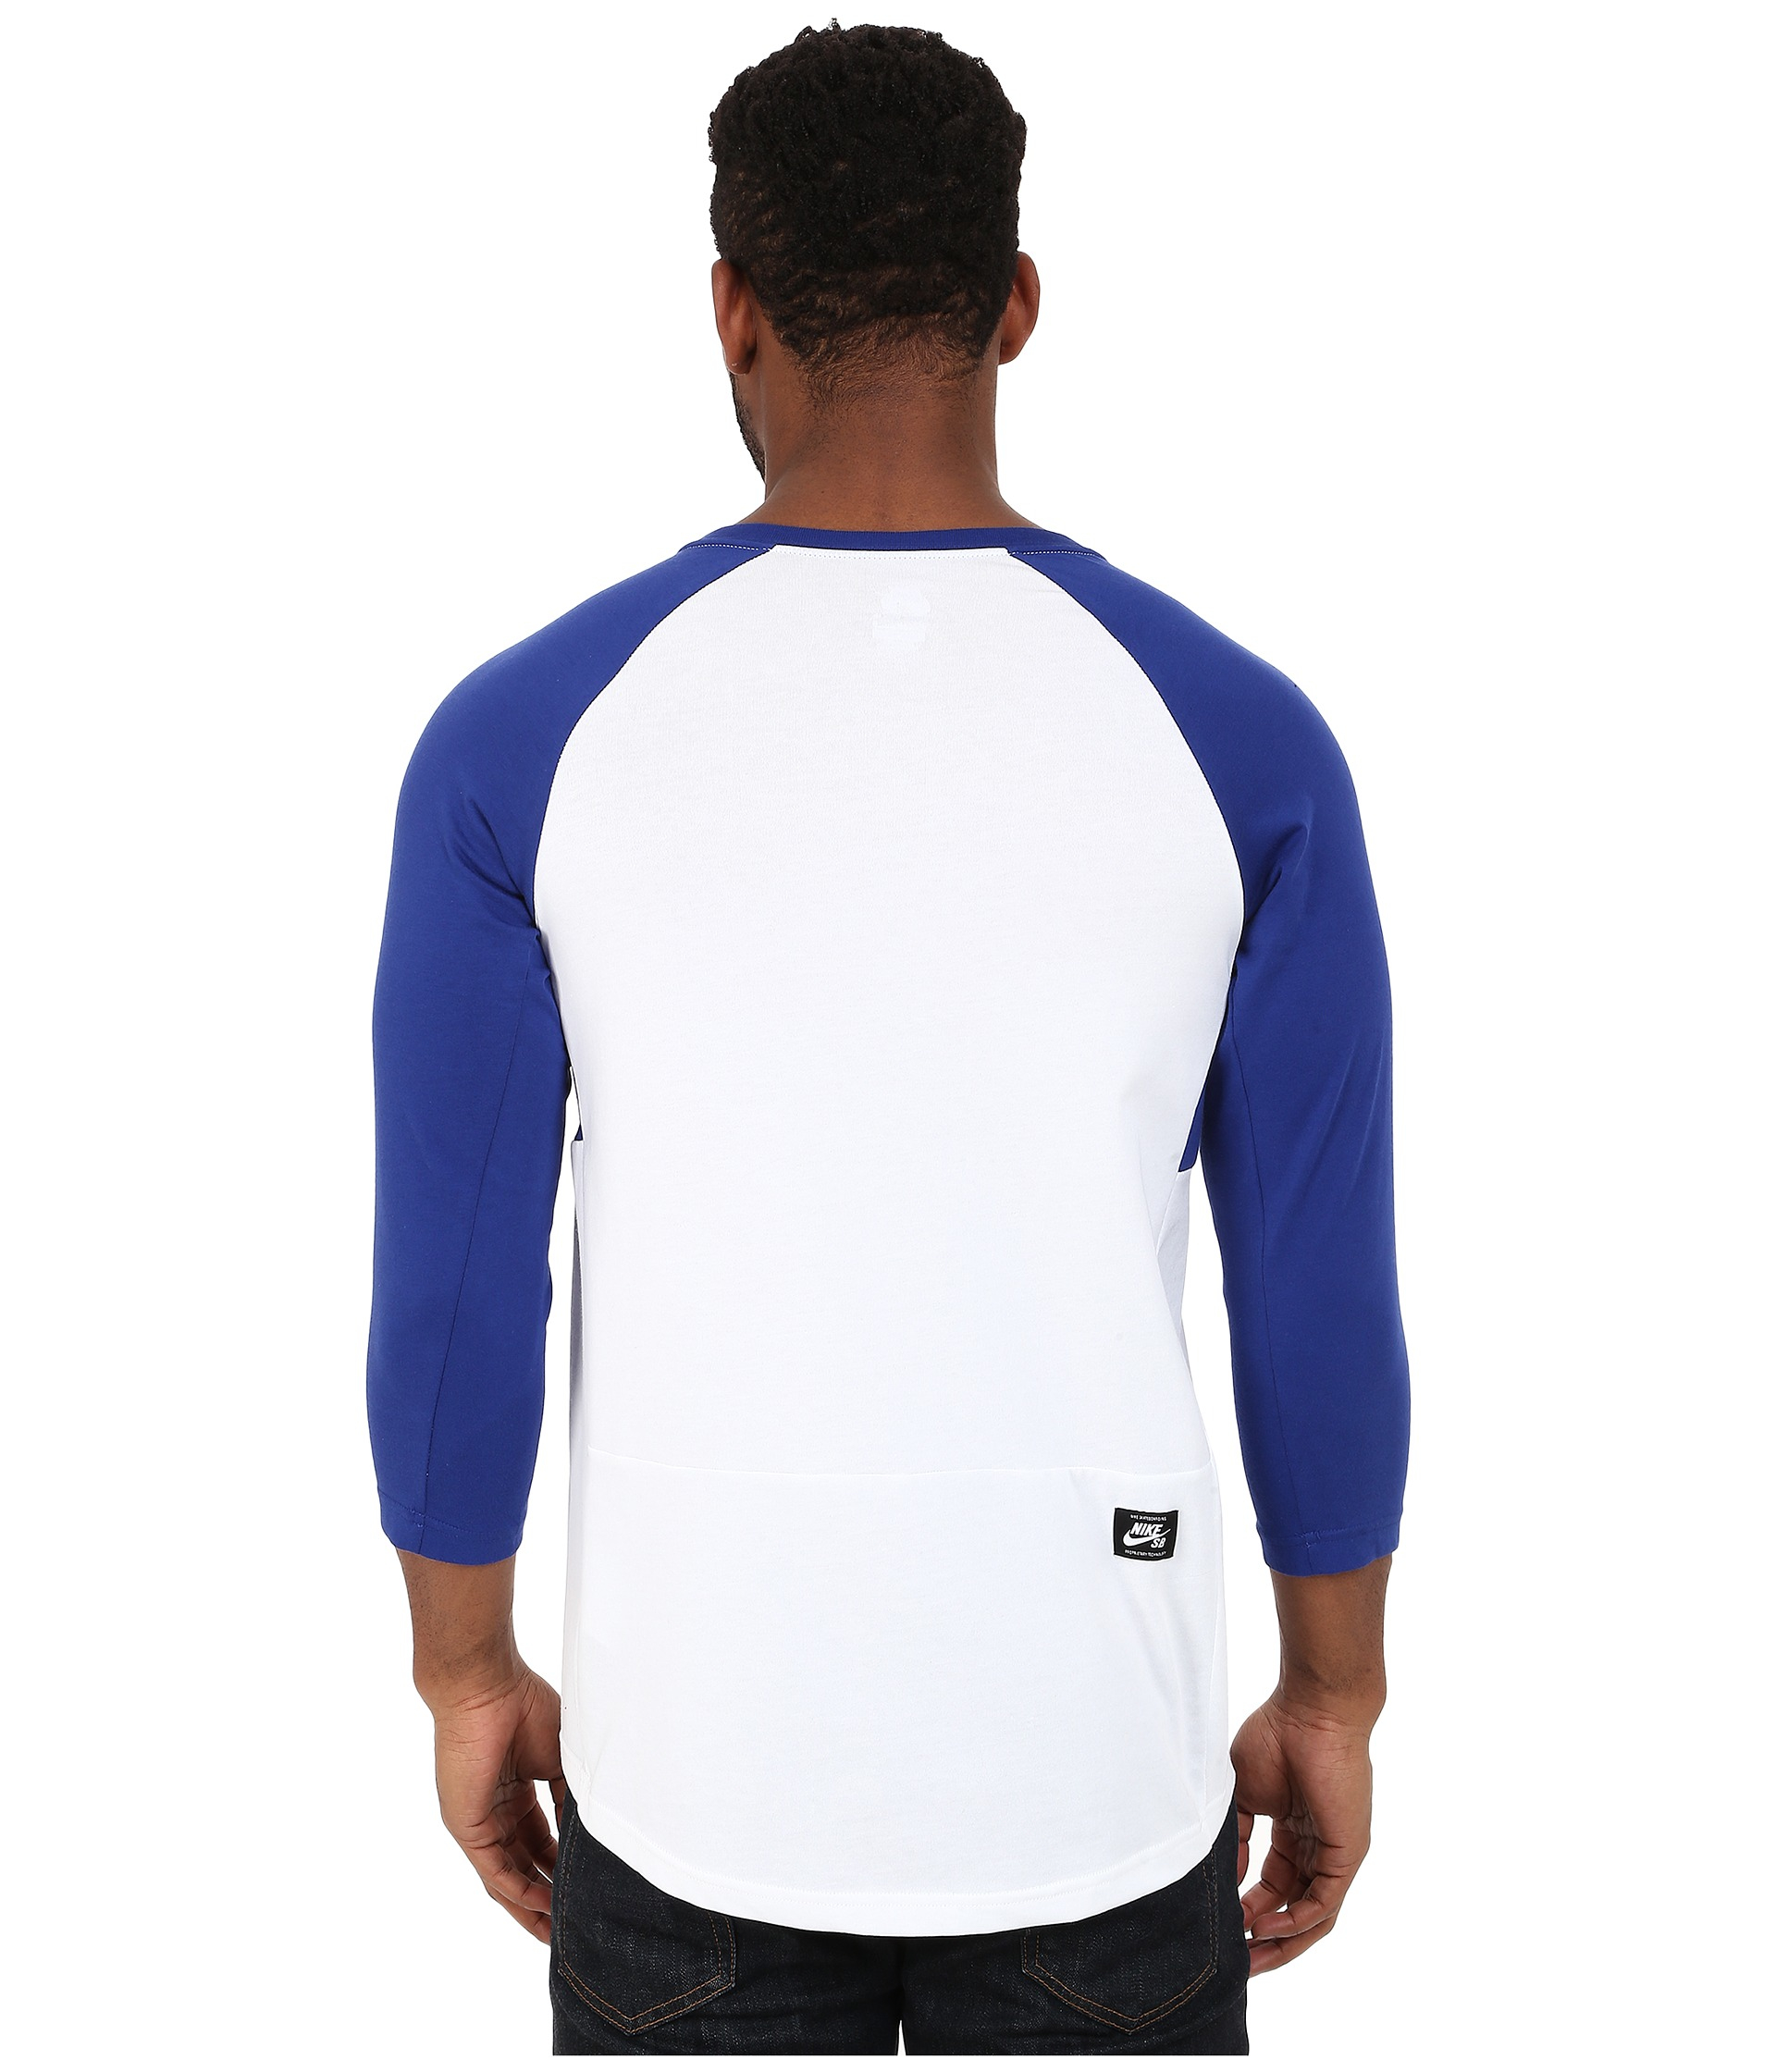 16769bf4 Nike Sb Dri-fit 3/4 Sleeve Henley Top in Blue for Men - Lyst